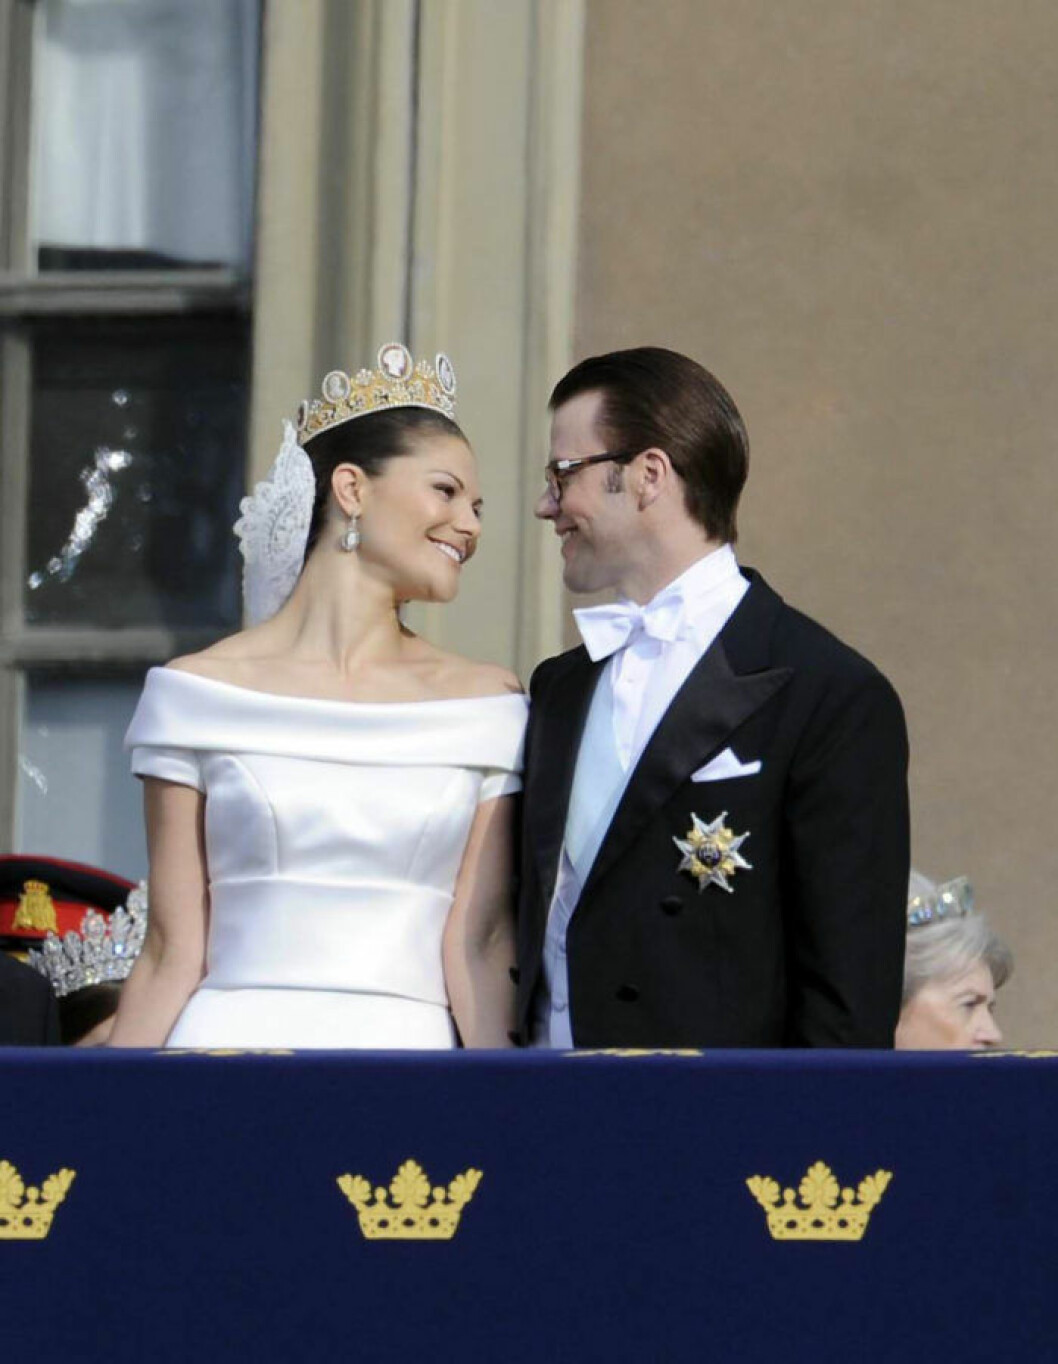 Stockholm, 2010-6-19 / Sweden's future queen Crown Princess VICTORIA has married her former personal trainer DANIEL WESTLING in a lavish ceremony that was one of the largest public celebrations ever organised in Stockholm. It was Europe's biggest wedding since Lady Diana Spencer married Prince Charles. Crown Princess Victoria's wedding dress was designed by P??r Engsheden. It is made of cream-coloured duchess silk satin, with short sleeves and a turned-out collar, which follows the rounded neckline. The dress has a v-shaped back with covered buttons. The sash at the waist is buttoned up at the back. The train is edged with a border, fastened at the waist, and has the same shape as the veil. The train is almost five metres long. The Crown Princess?s bridal bouquet consists of a mixture of traditional Swedish summer flowers and more exotic flowers. All the flowers are white, and the bouquet is tied into a free teardrop shape. ?? Copyright 2010, Most Wanted Pictures, Inc. | Tarzana | CA 91356 | USA | photo@mostwantedpictures.net *** Local Caption *** 00296335